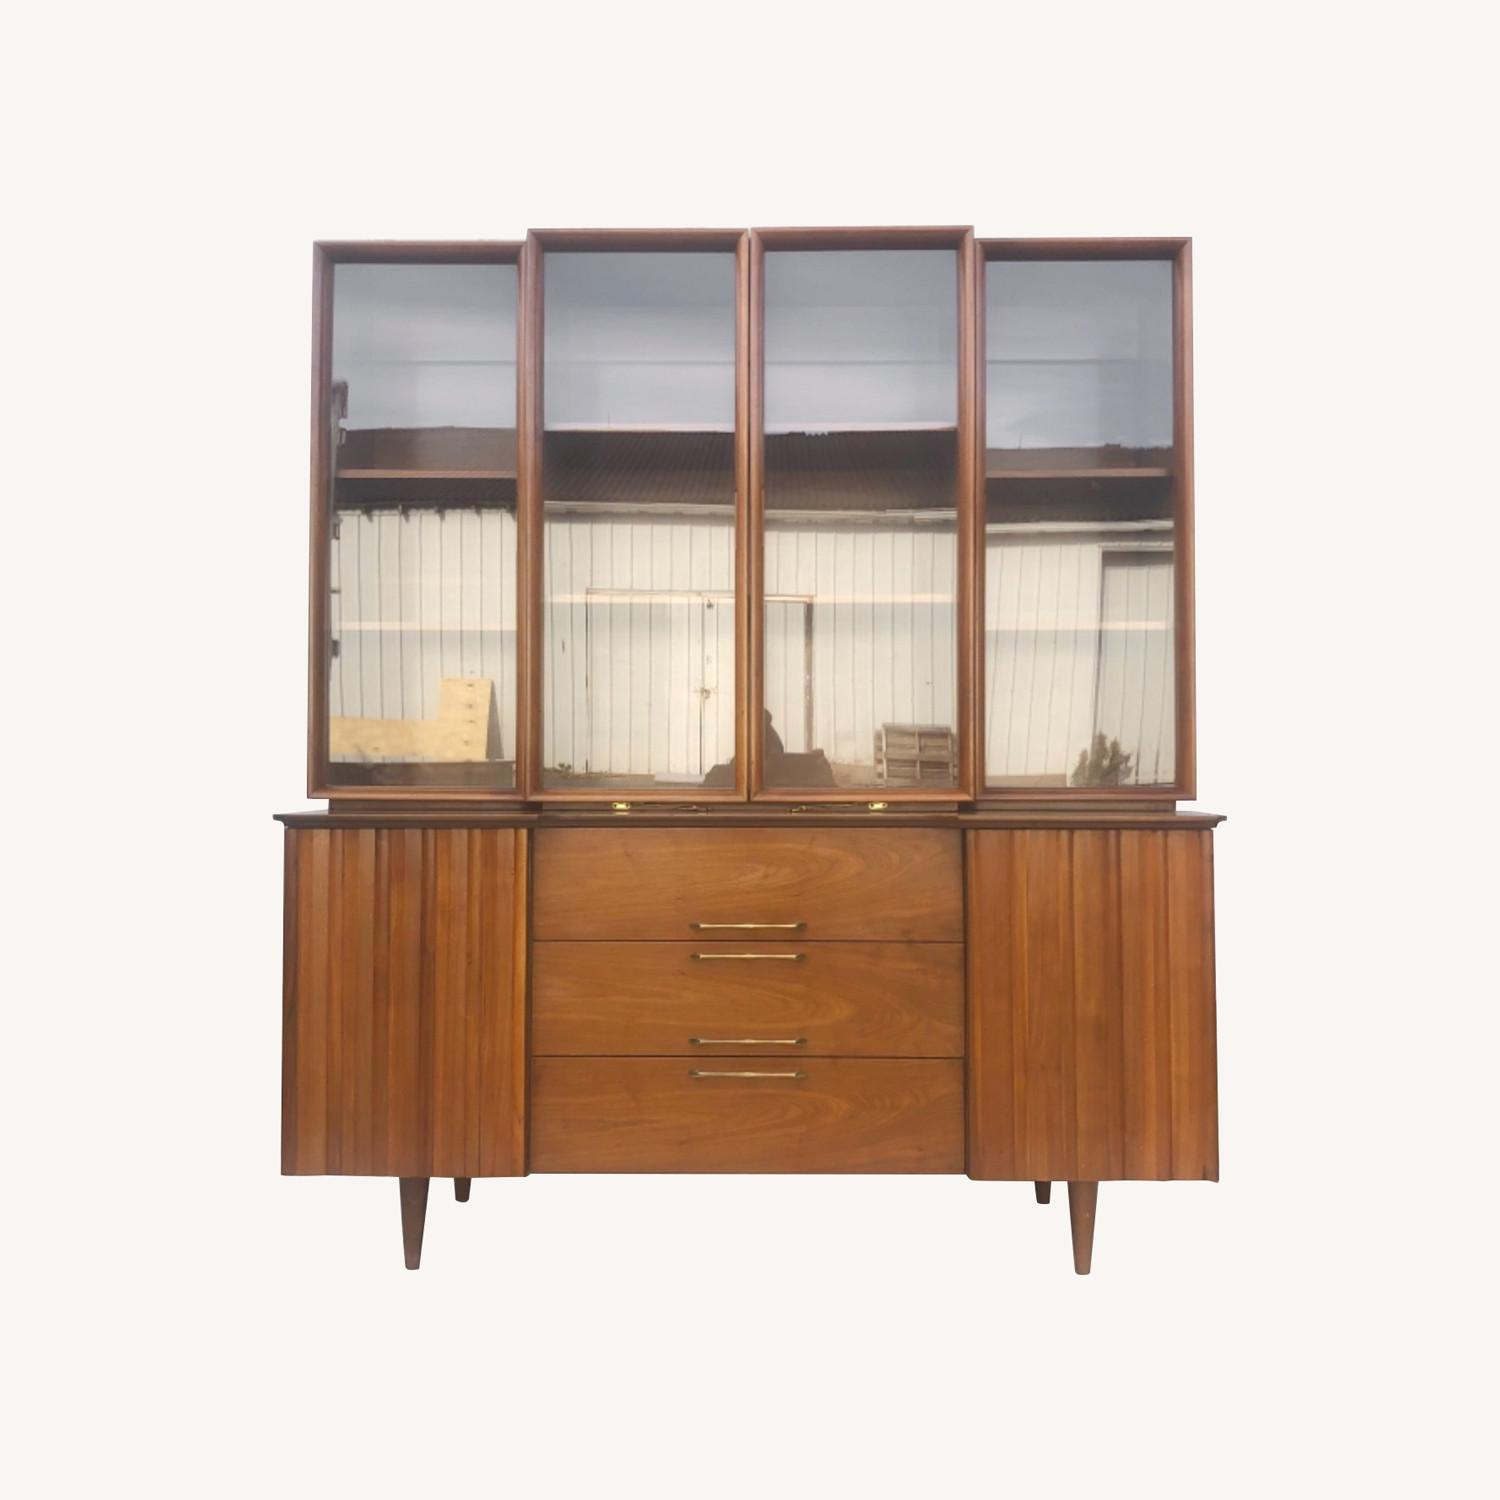 Mid-Century Modern Sideboard With Display Topper - image-0